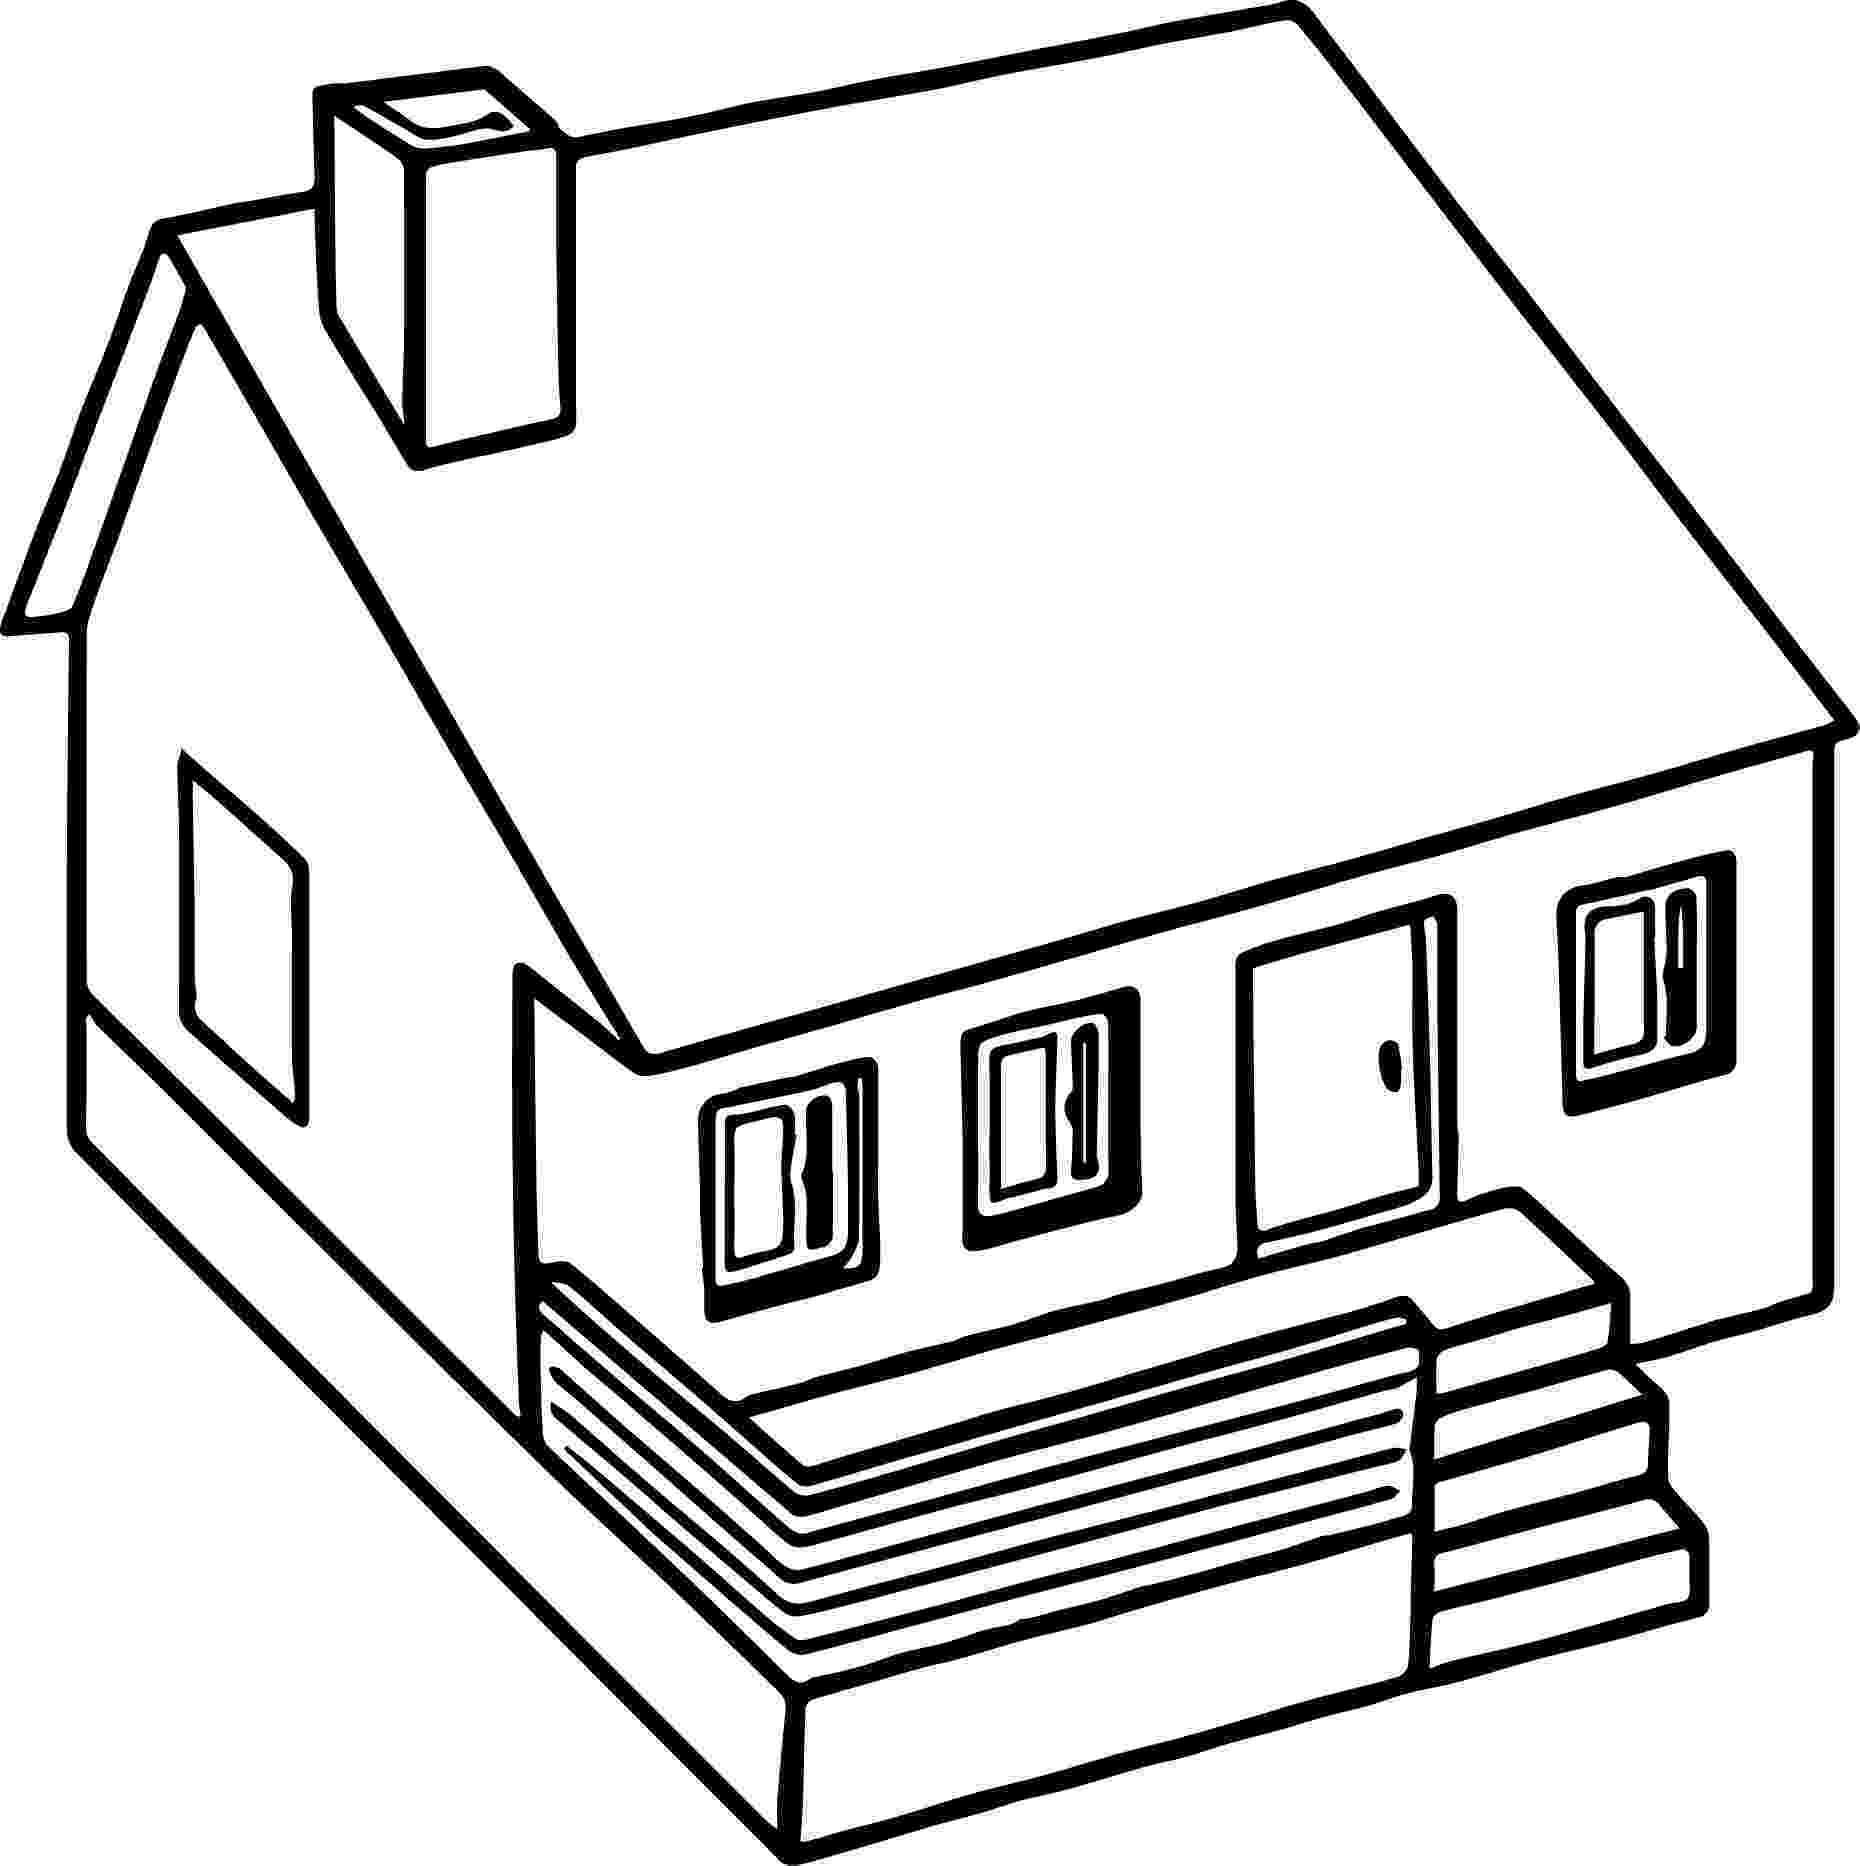 home coloring page house coloring pages downloadable and printable images coloring home page